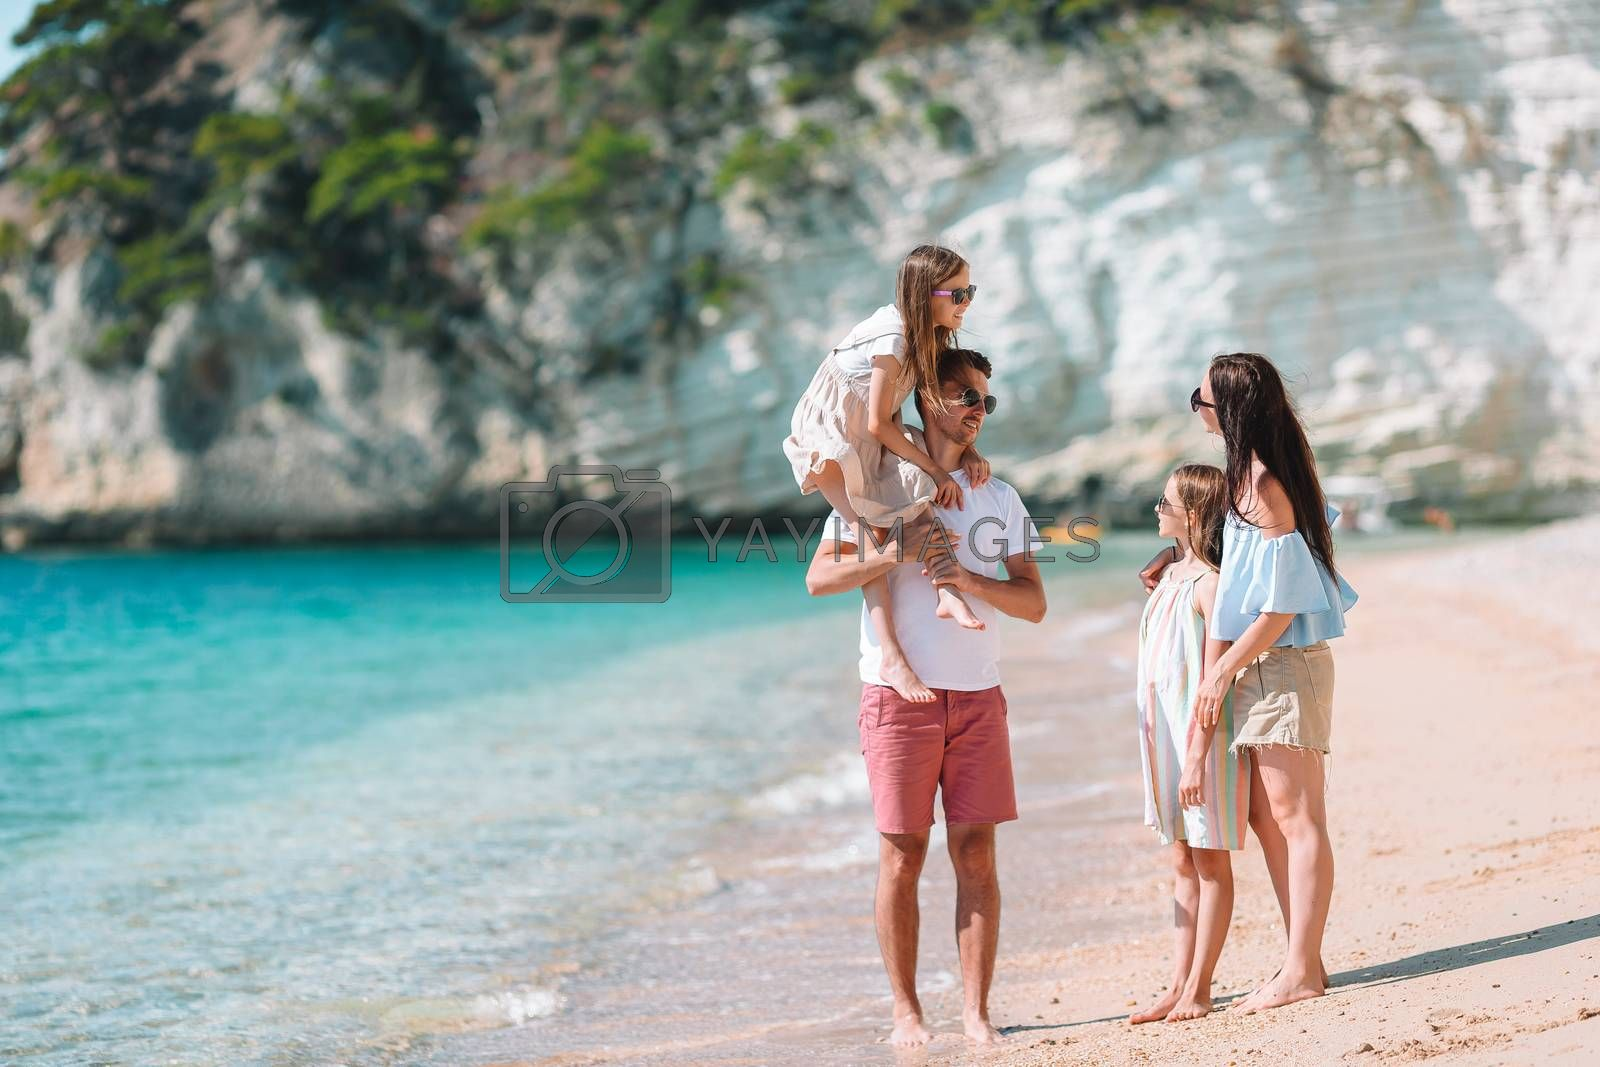 Happy family on the beach. People having fun on summer vacation. Father, mother and children against blue sea and mountains background. Holiday travel concept